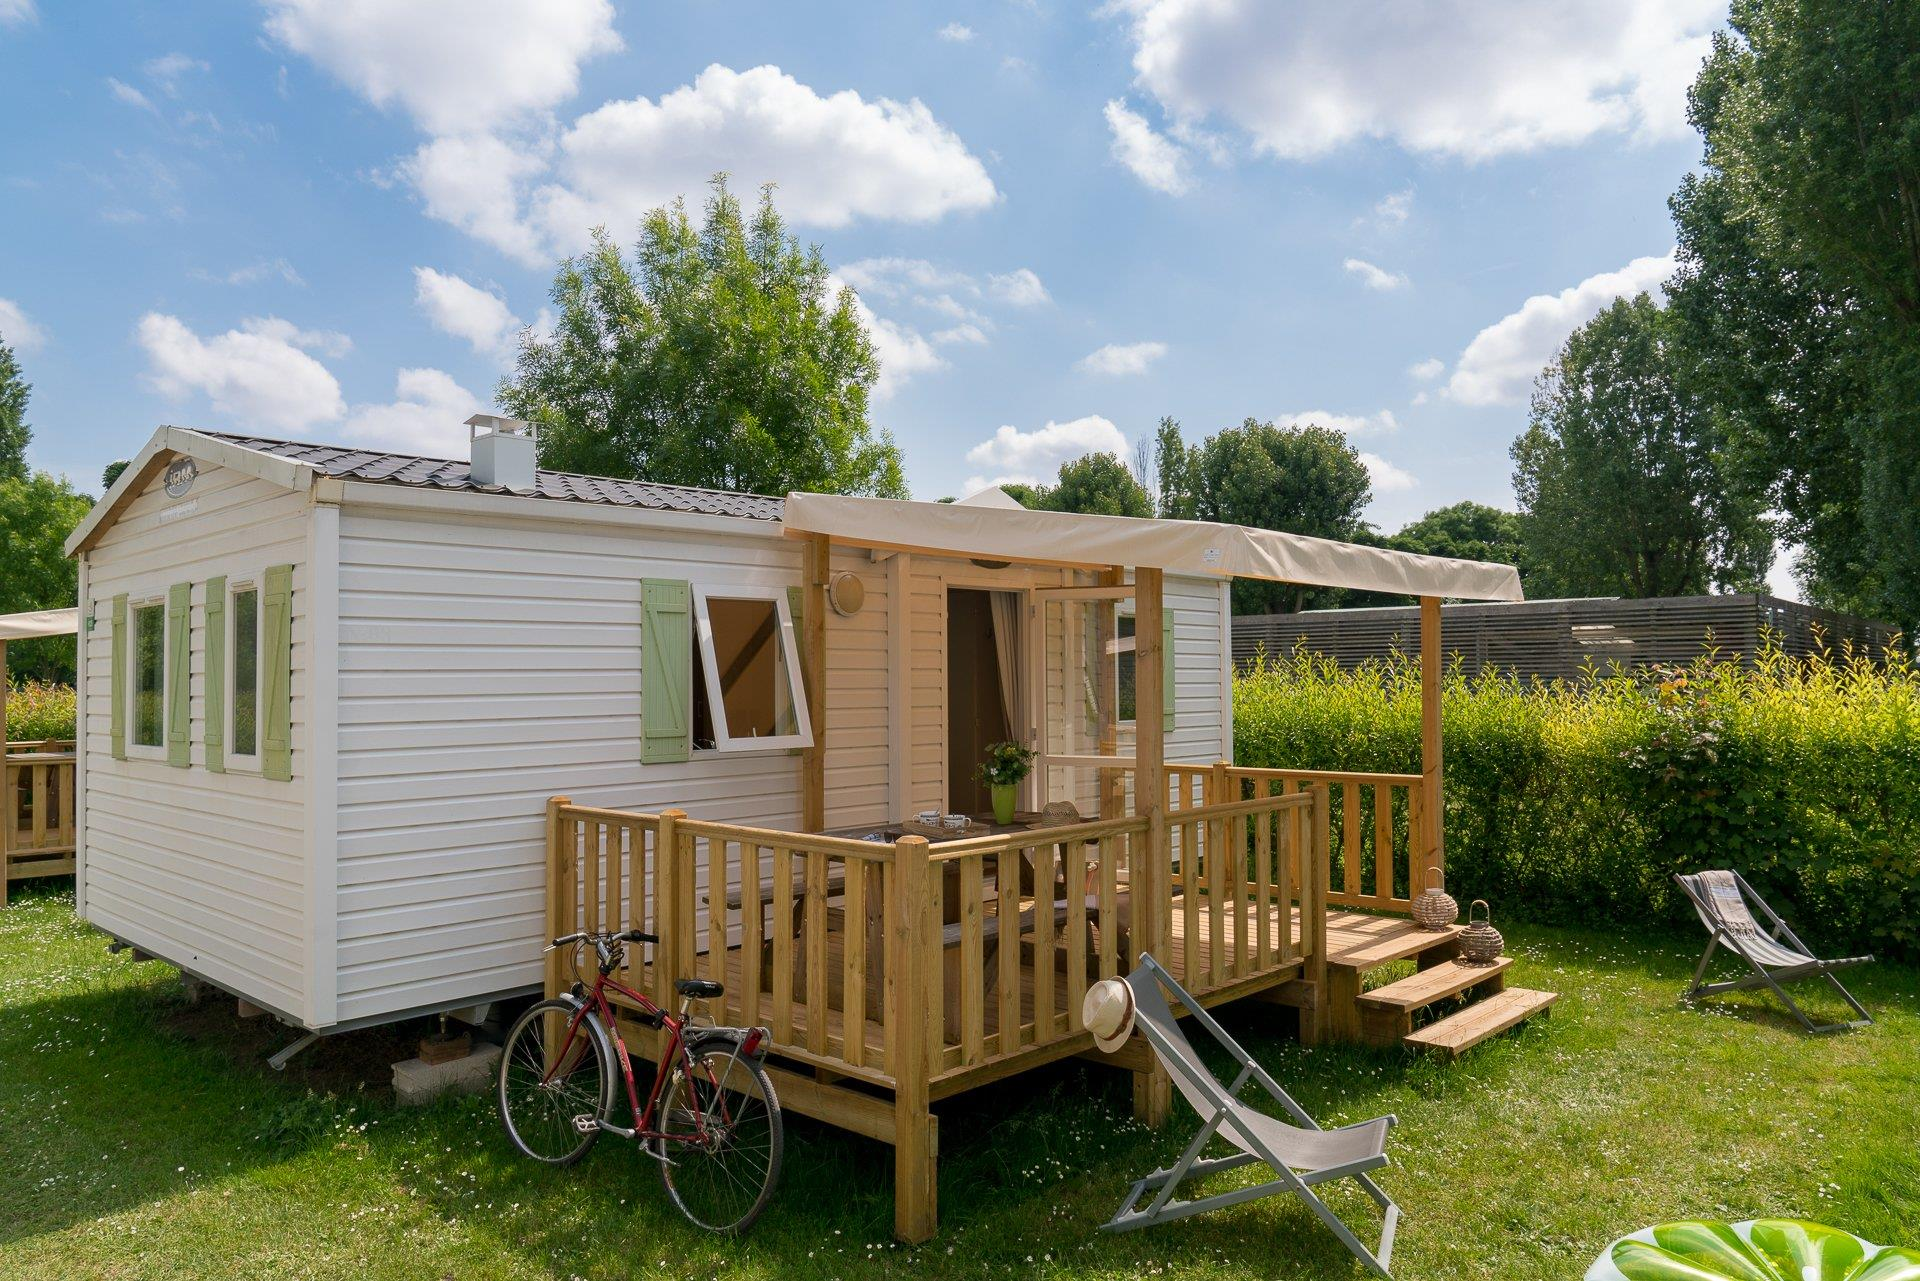 Accommodation - Cottage 2 Bedrooms ** - Camping Sandaya Paris Maisons Laffitte